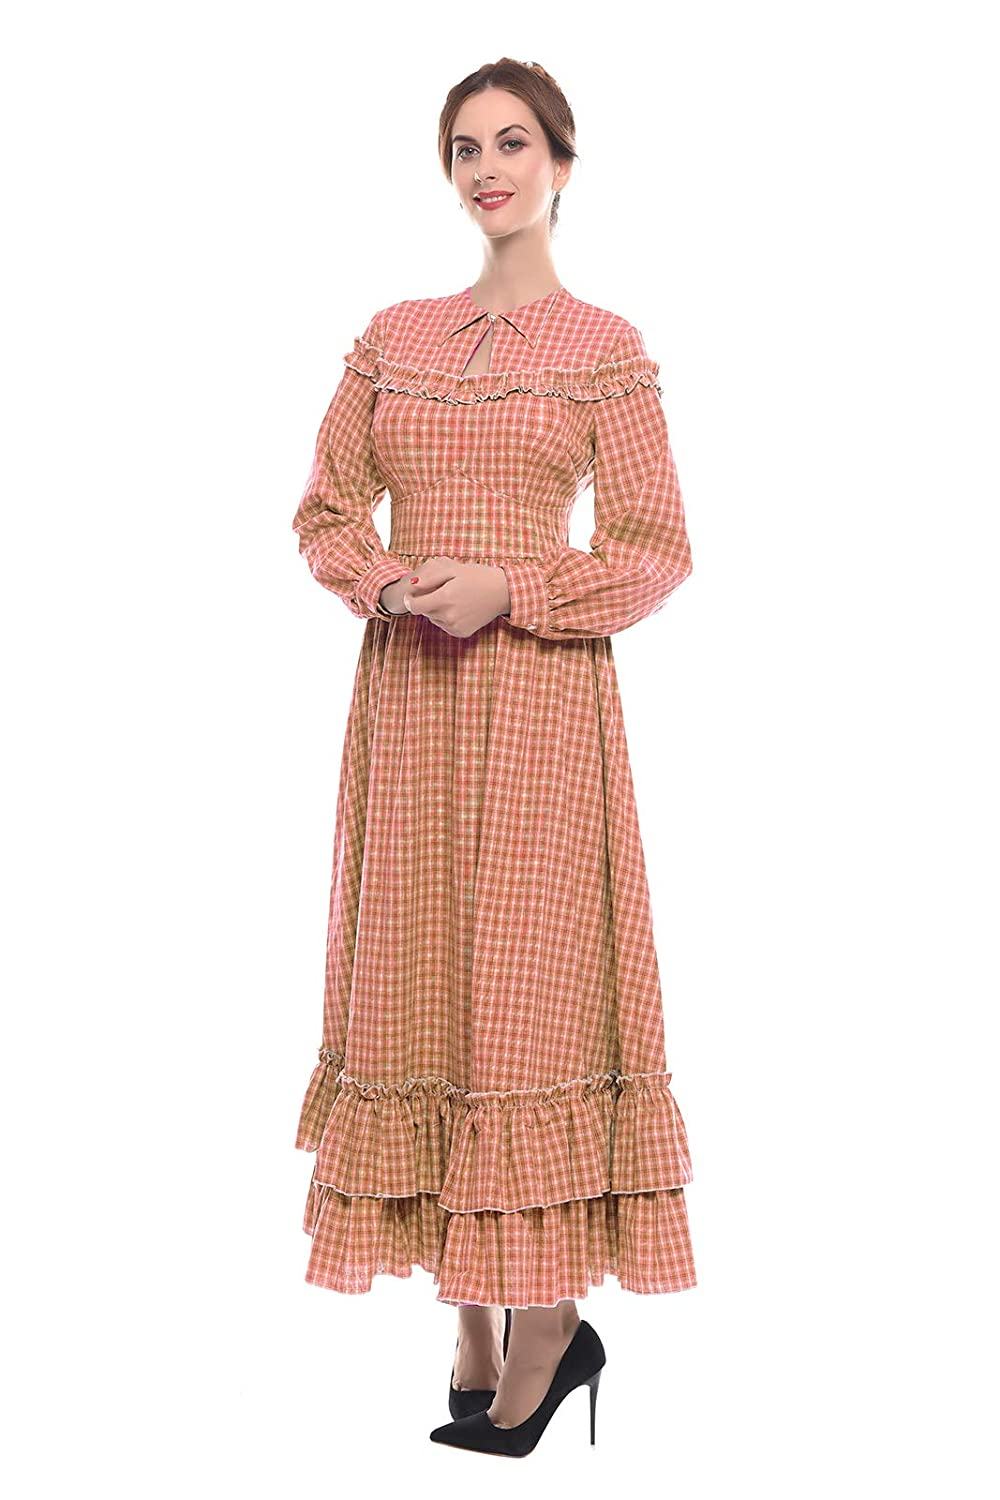 1900s, 1910s, WW1, Titanic Costumes NSPSTT Women Girls American Pioneer Colonial Dress Prairie Costume $53.99 AT vintagedancer.com